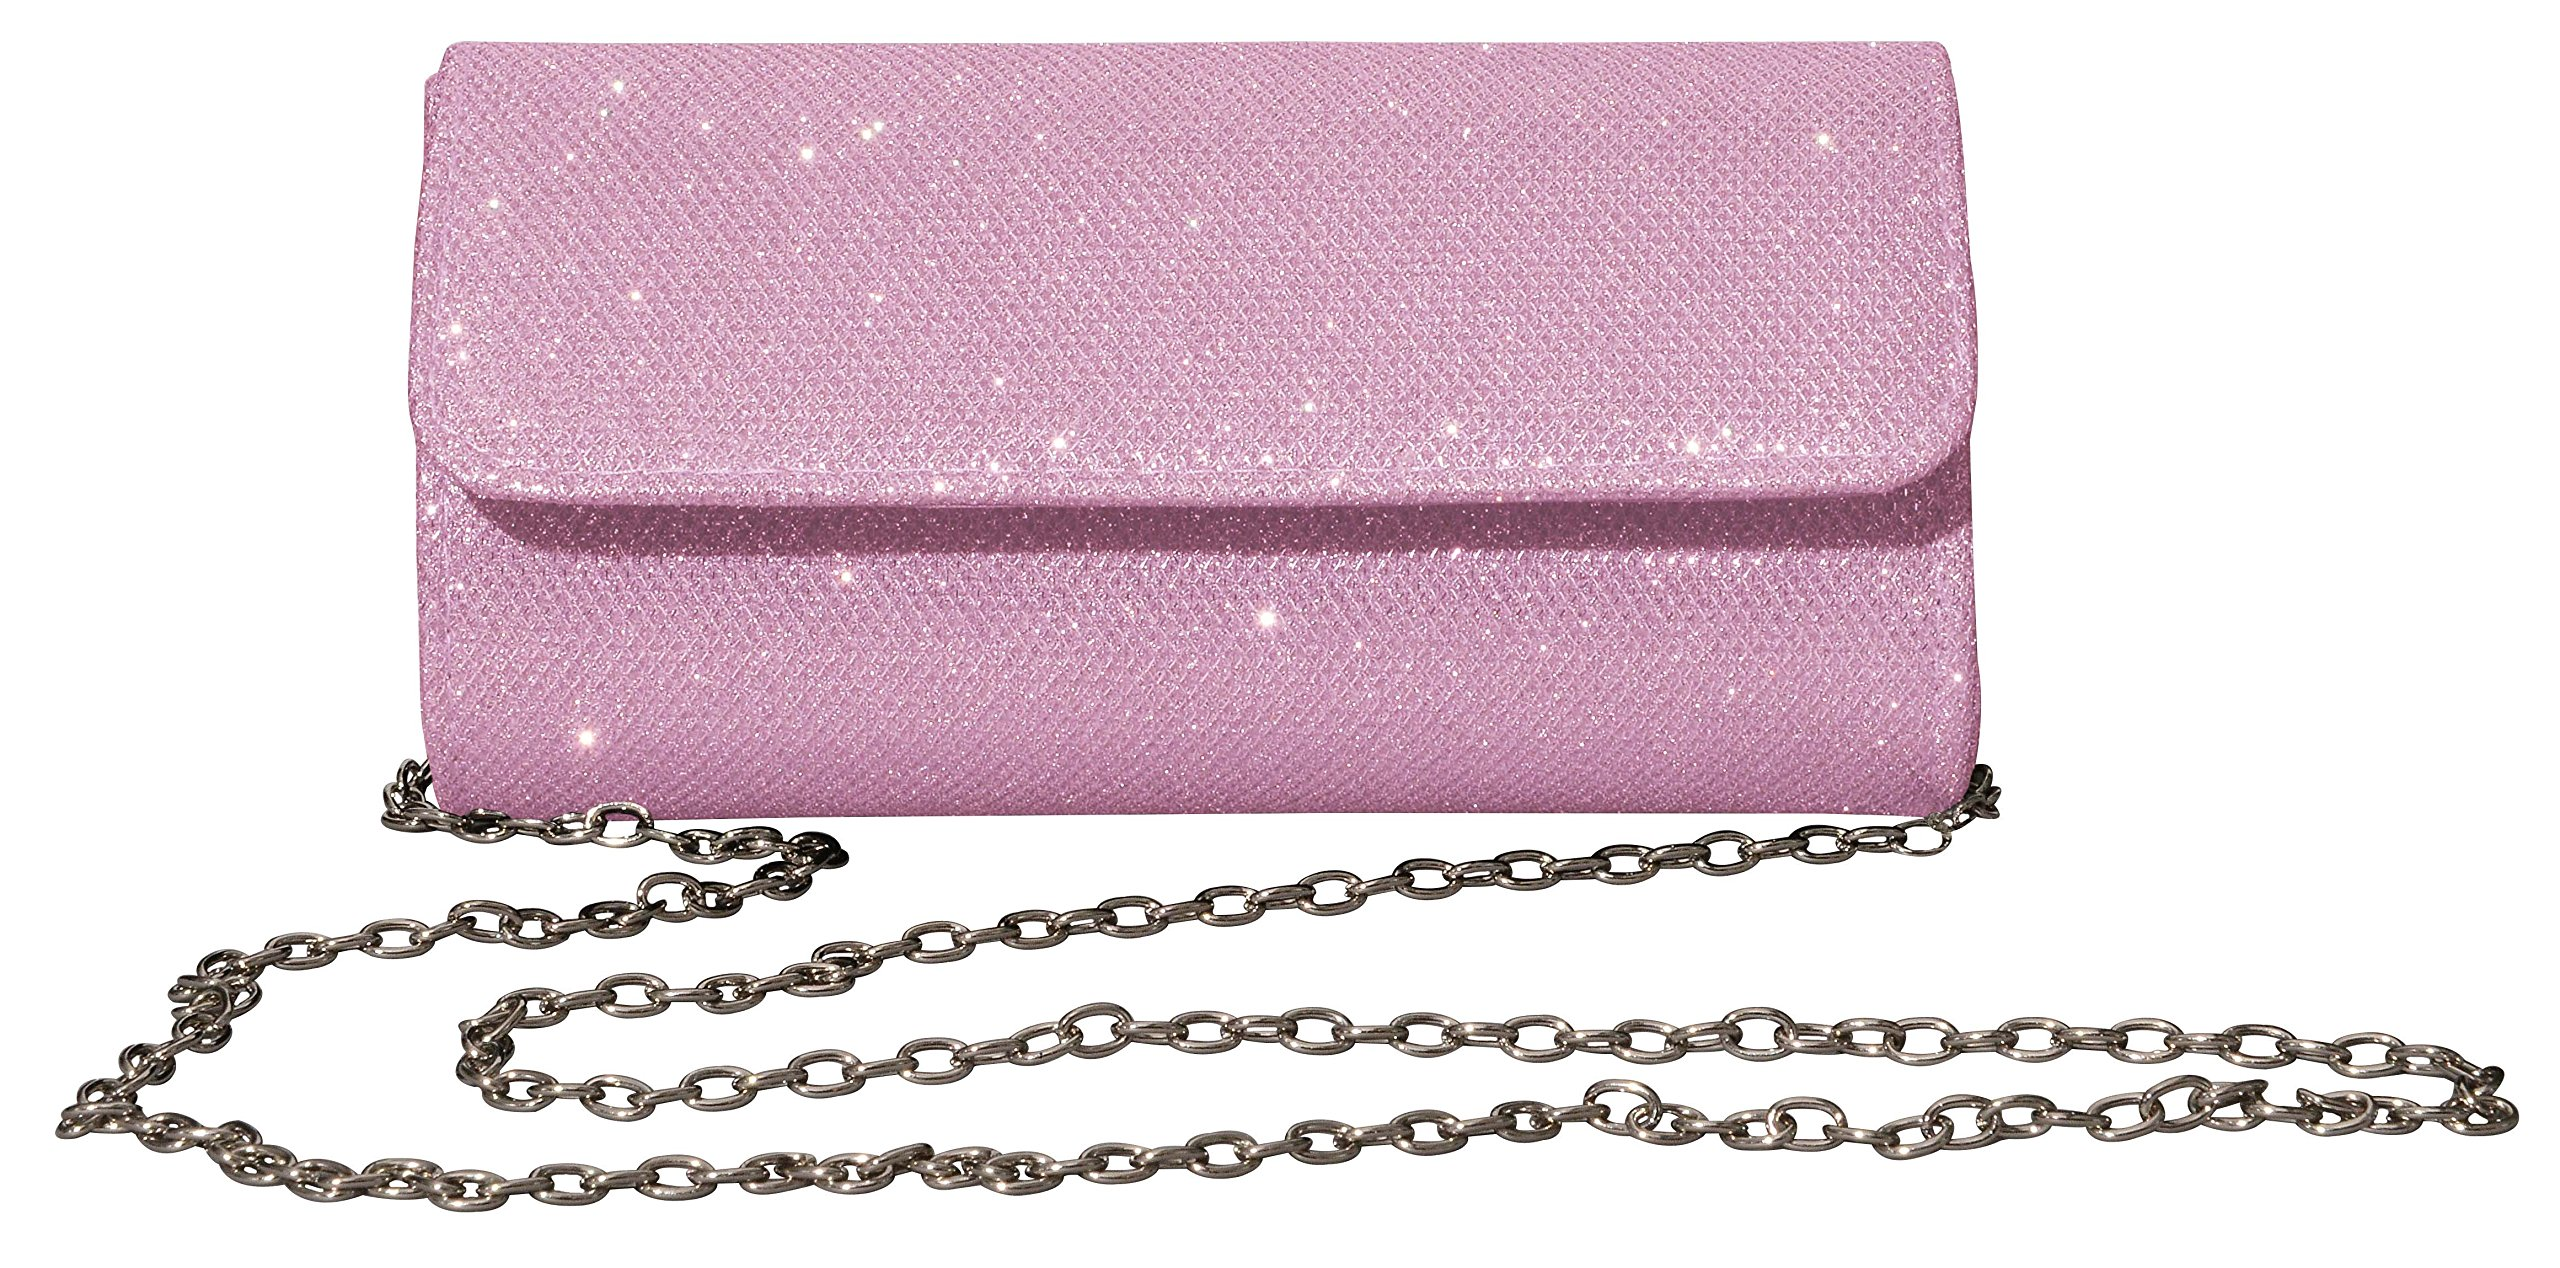 Outrip Women's Evening Bag Clutch Purse Glitter Party Wedding Handbag with Chain (Pink)